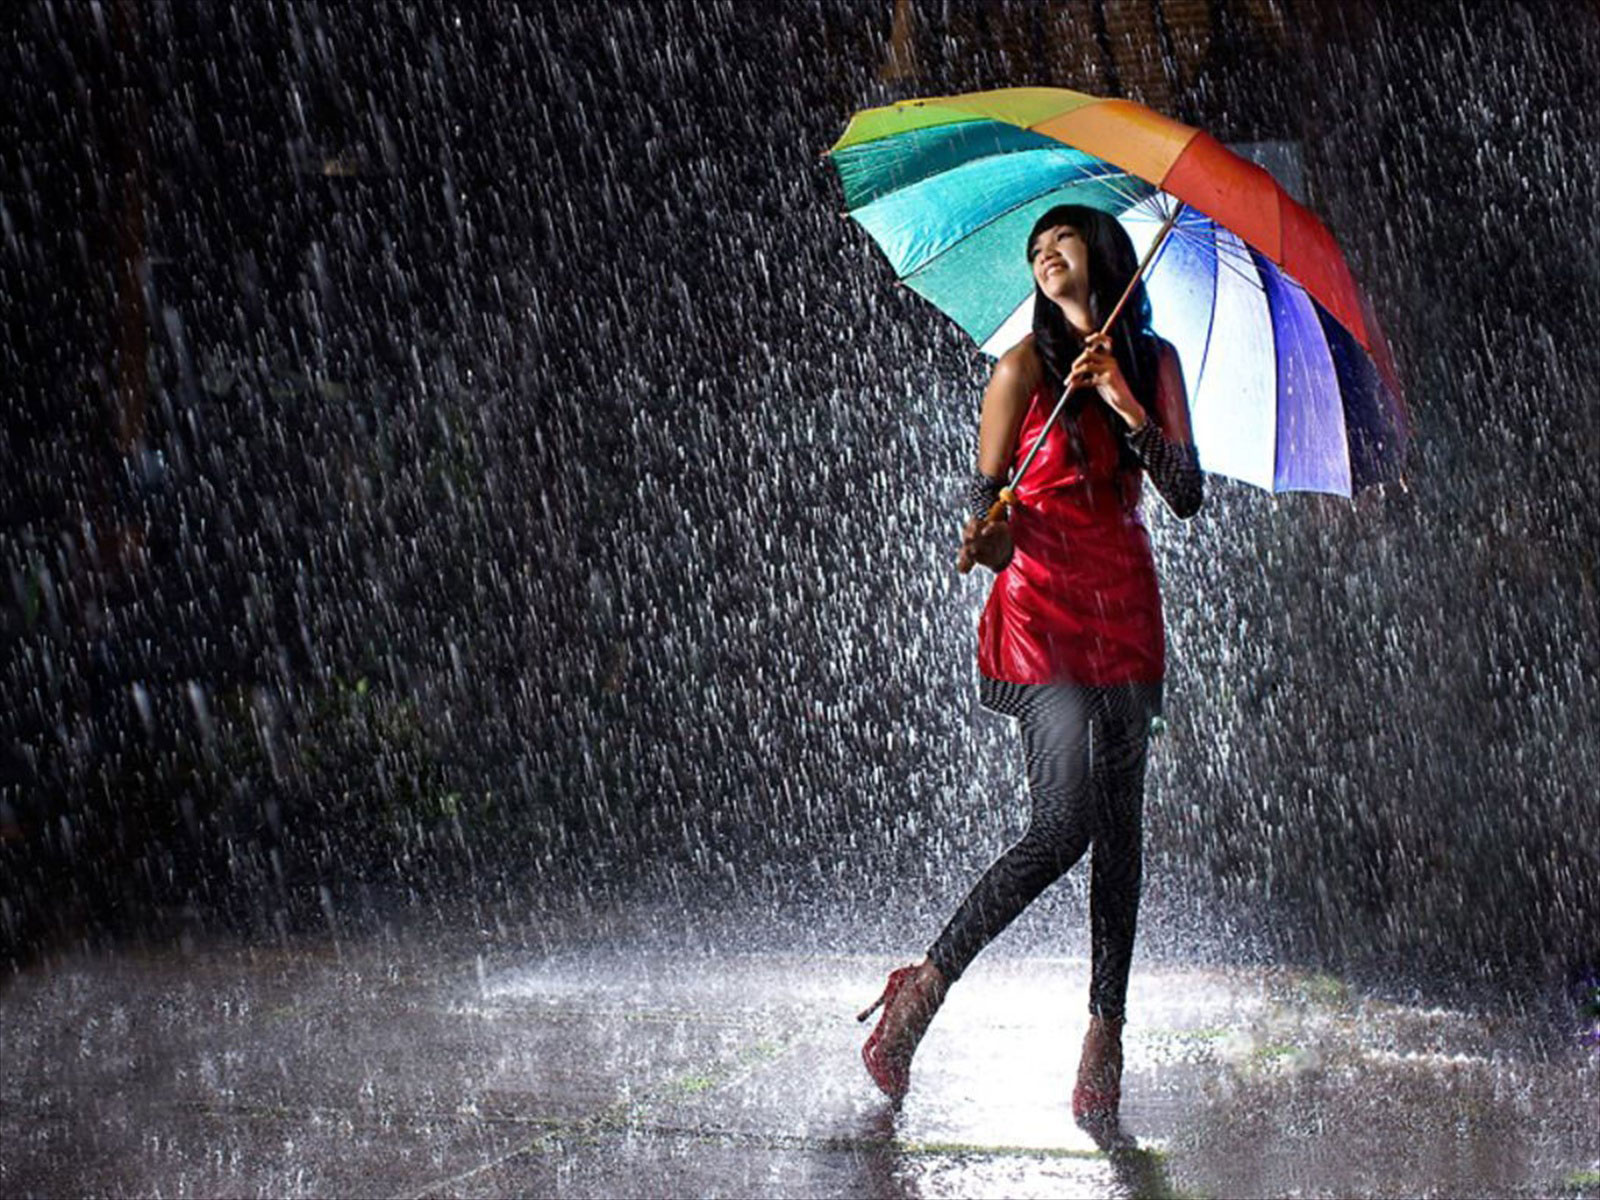 Wallpaper Love Rain Hd : Dancing Rain Wallpaper